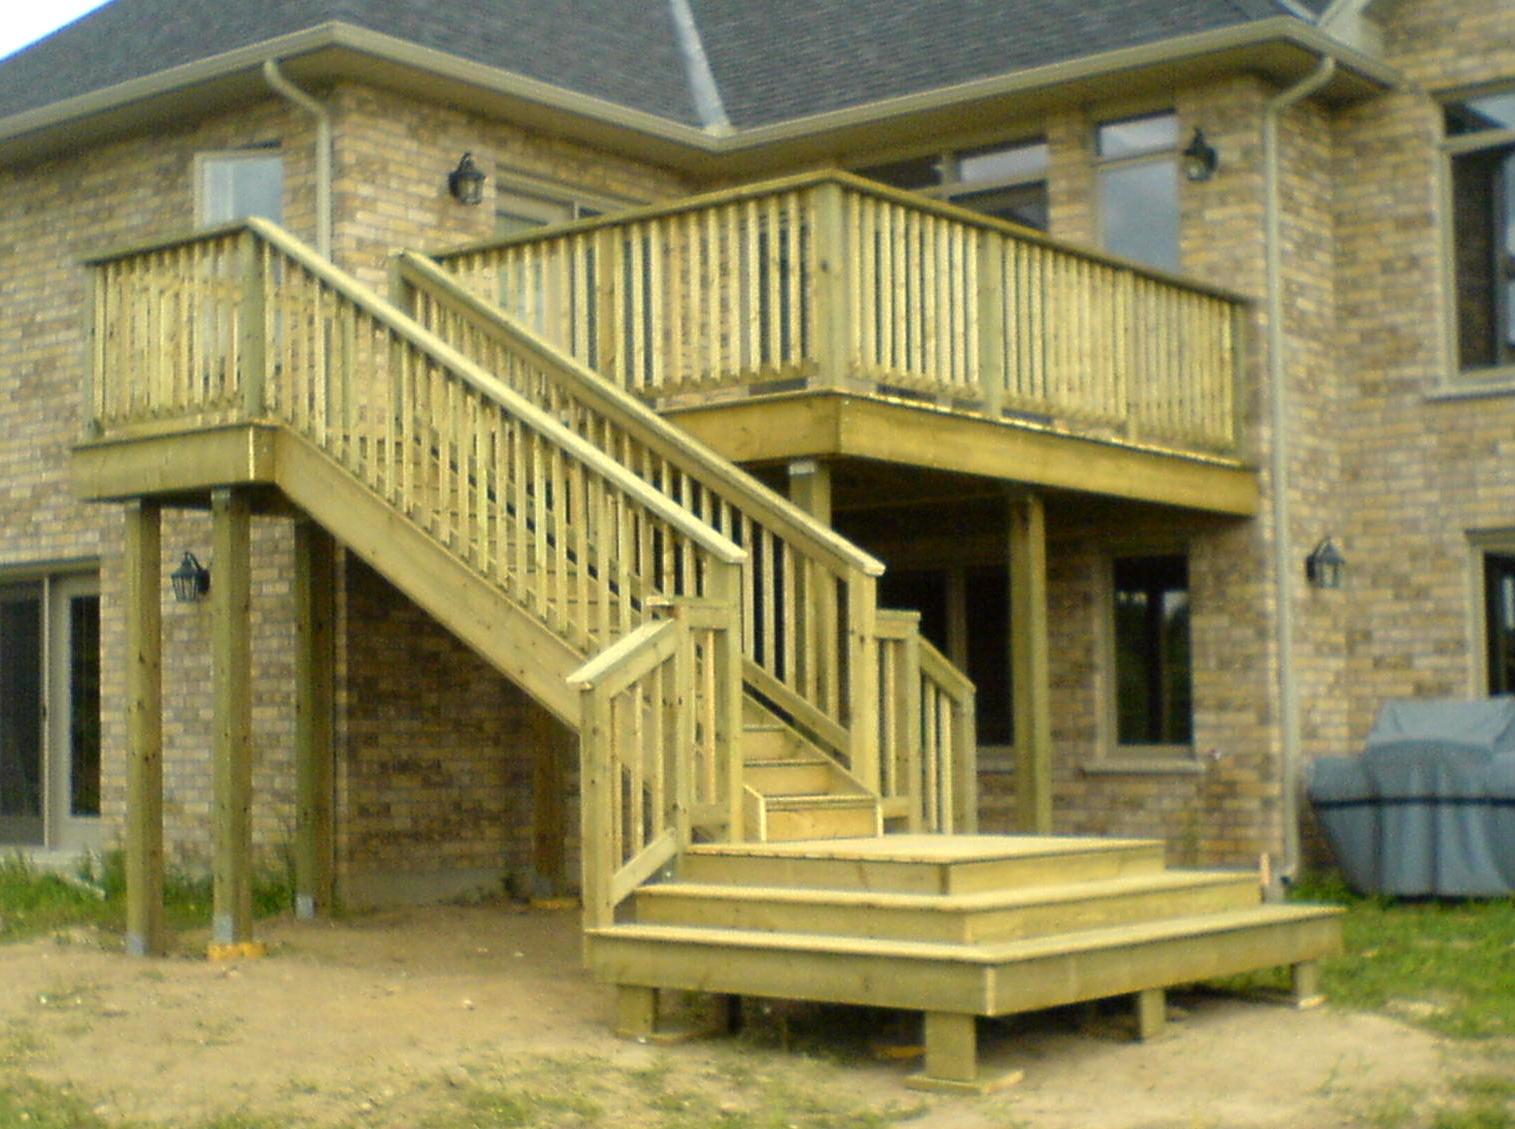 Pressure treated deck and stairs